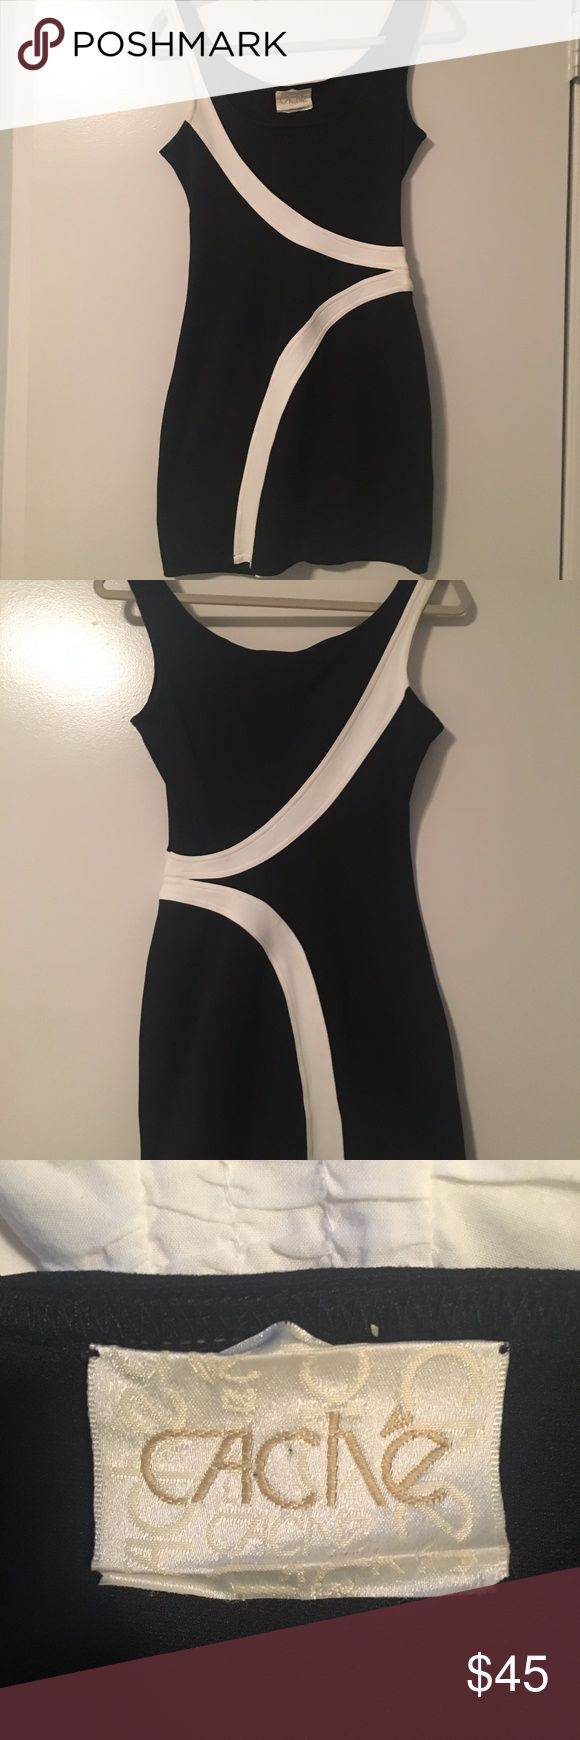 Cache LBD Black and White Bodycon Dress Fantastic black and white going-out bodycon/bandage-like dress with a flattering waist shaping cut and stretch. 86% tactel nylon 8% nylon 6% lycra Cache Dresses Mini